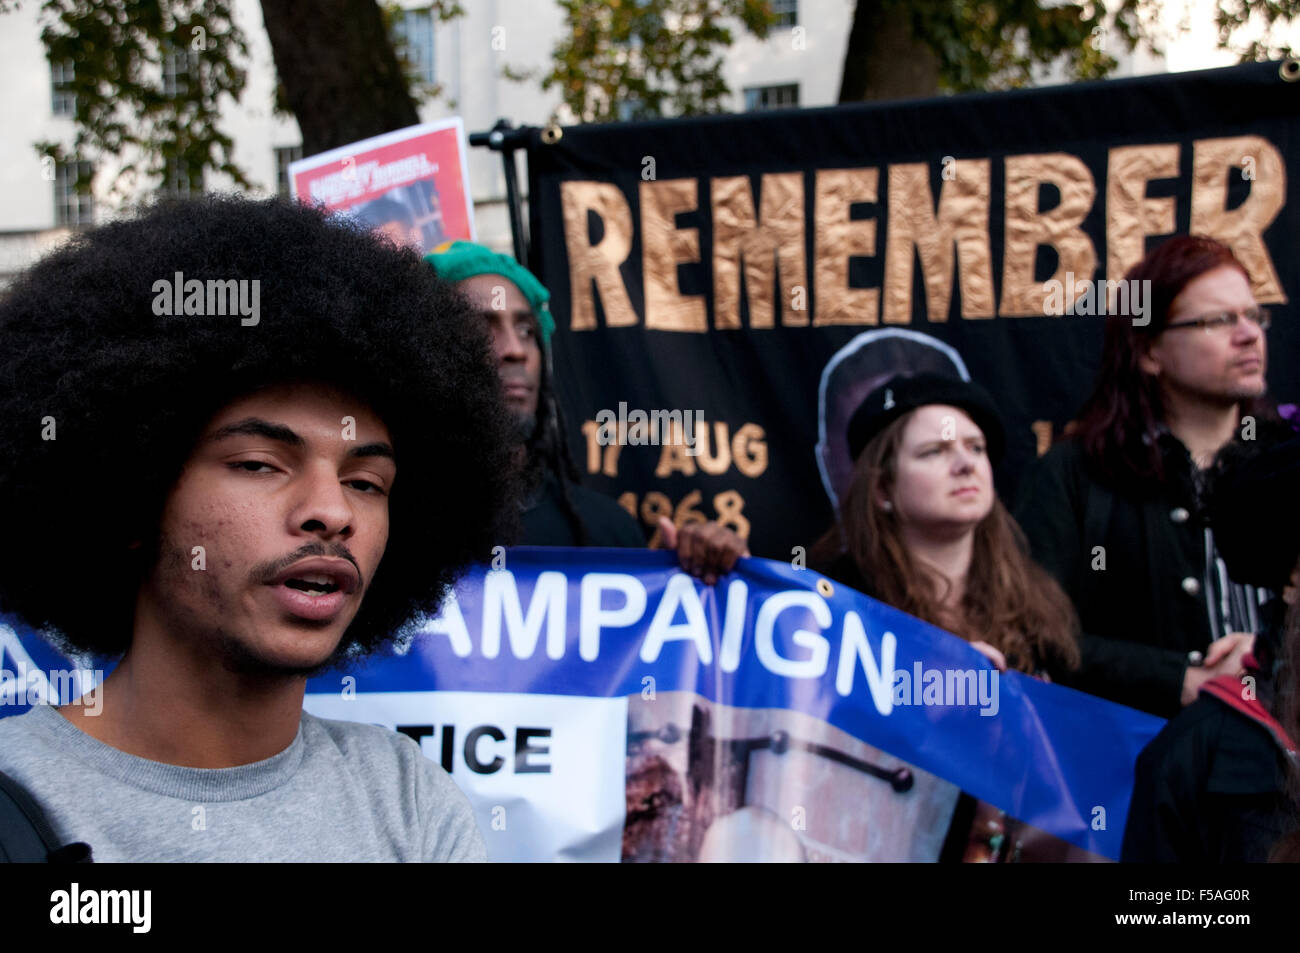 Friends and families of those who Died in Police Custody march through London Death in Custody Campaign - Stock Image